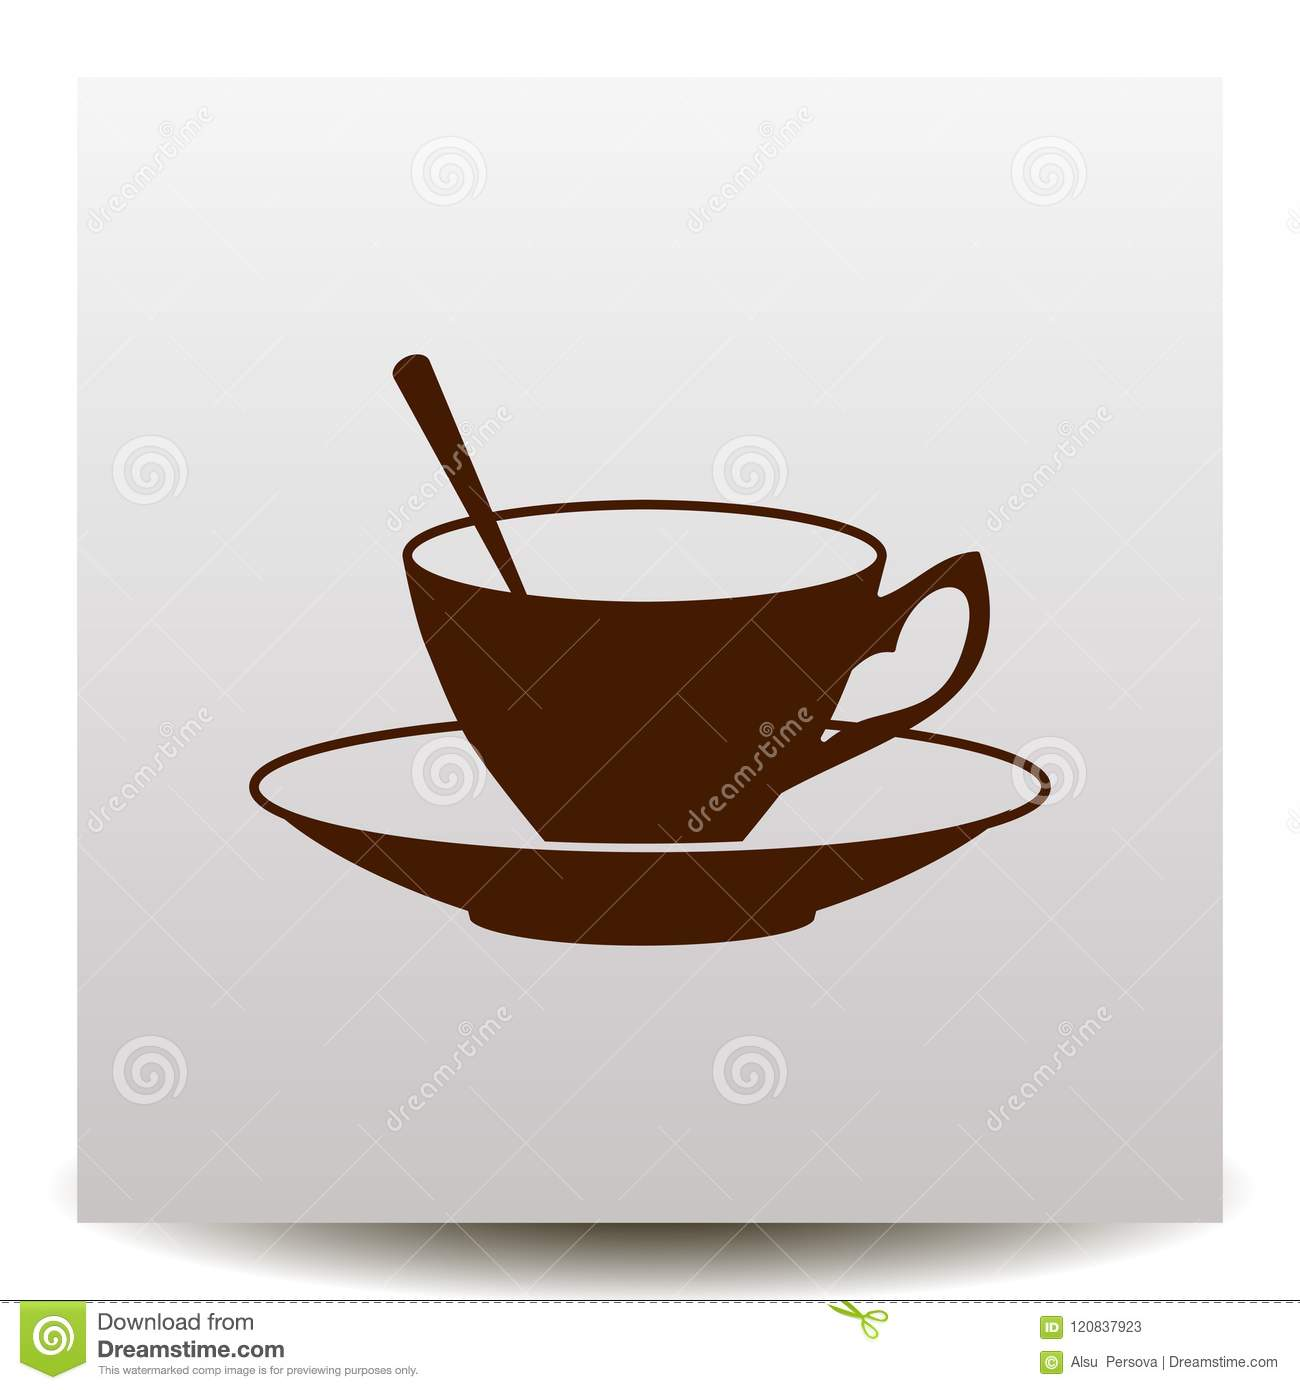 Coffee Cup With Saucer And Spoon Vector Icon Stock Vector Illustration Of Aroma Energy 120837923